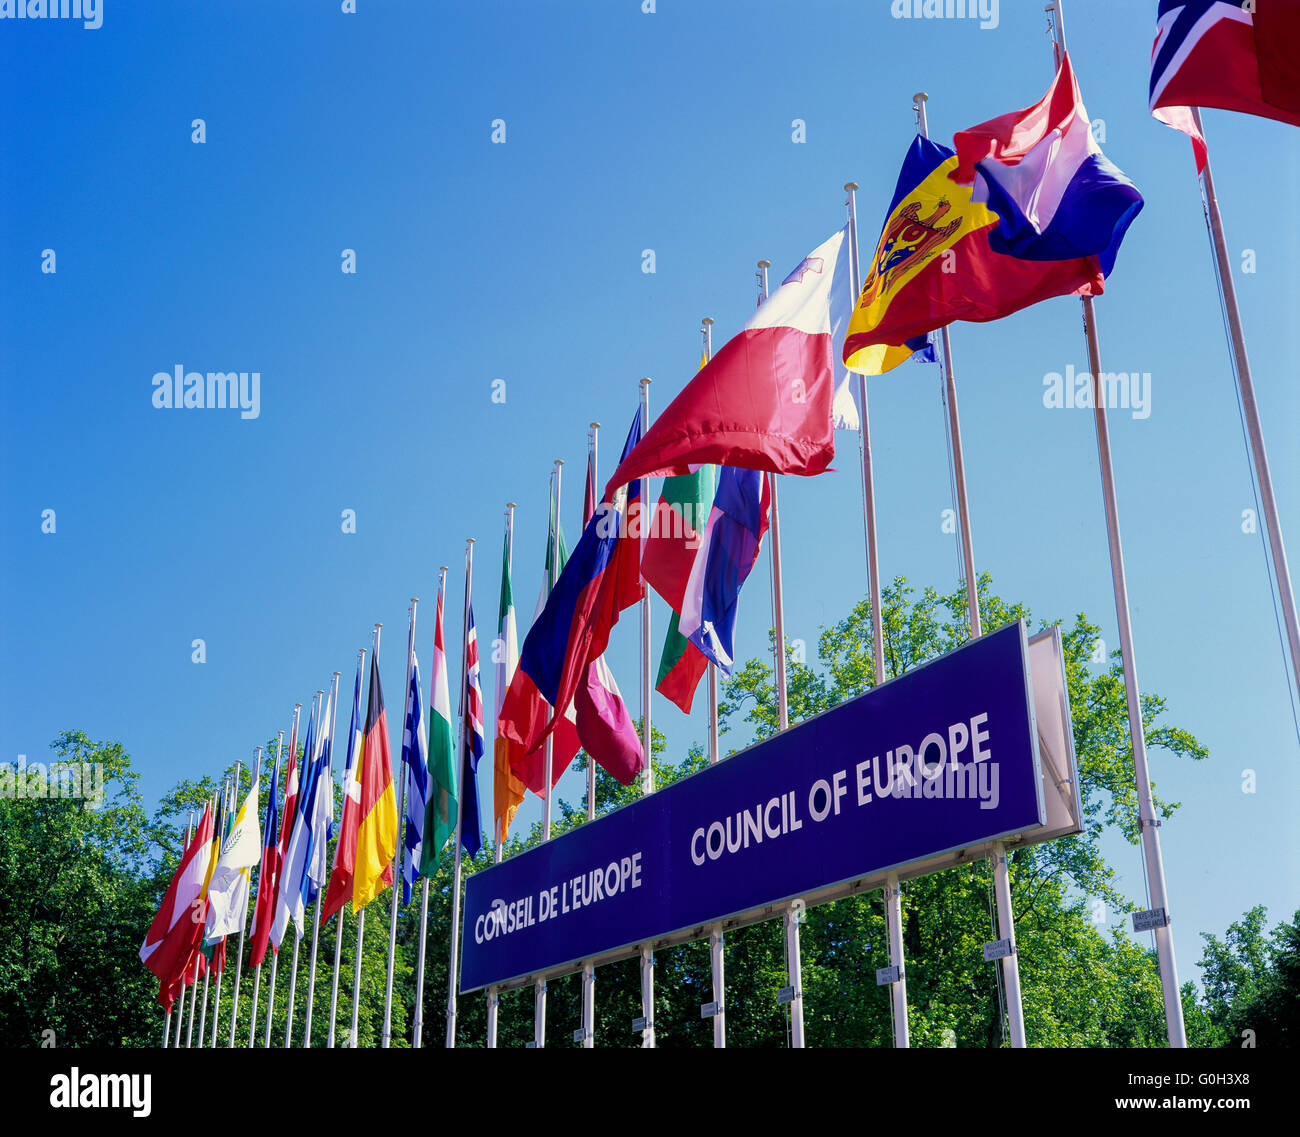 Flags of European countries and Council of Europe sign, Strasbourg, Alsace, France - Stock Image